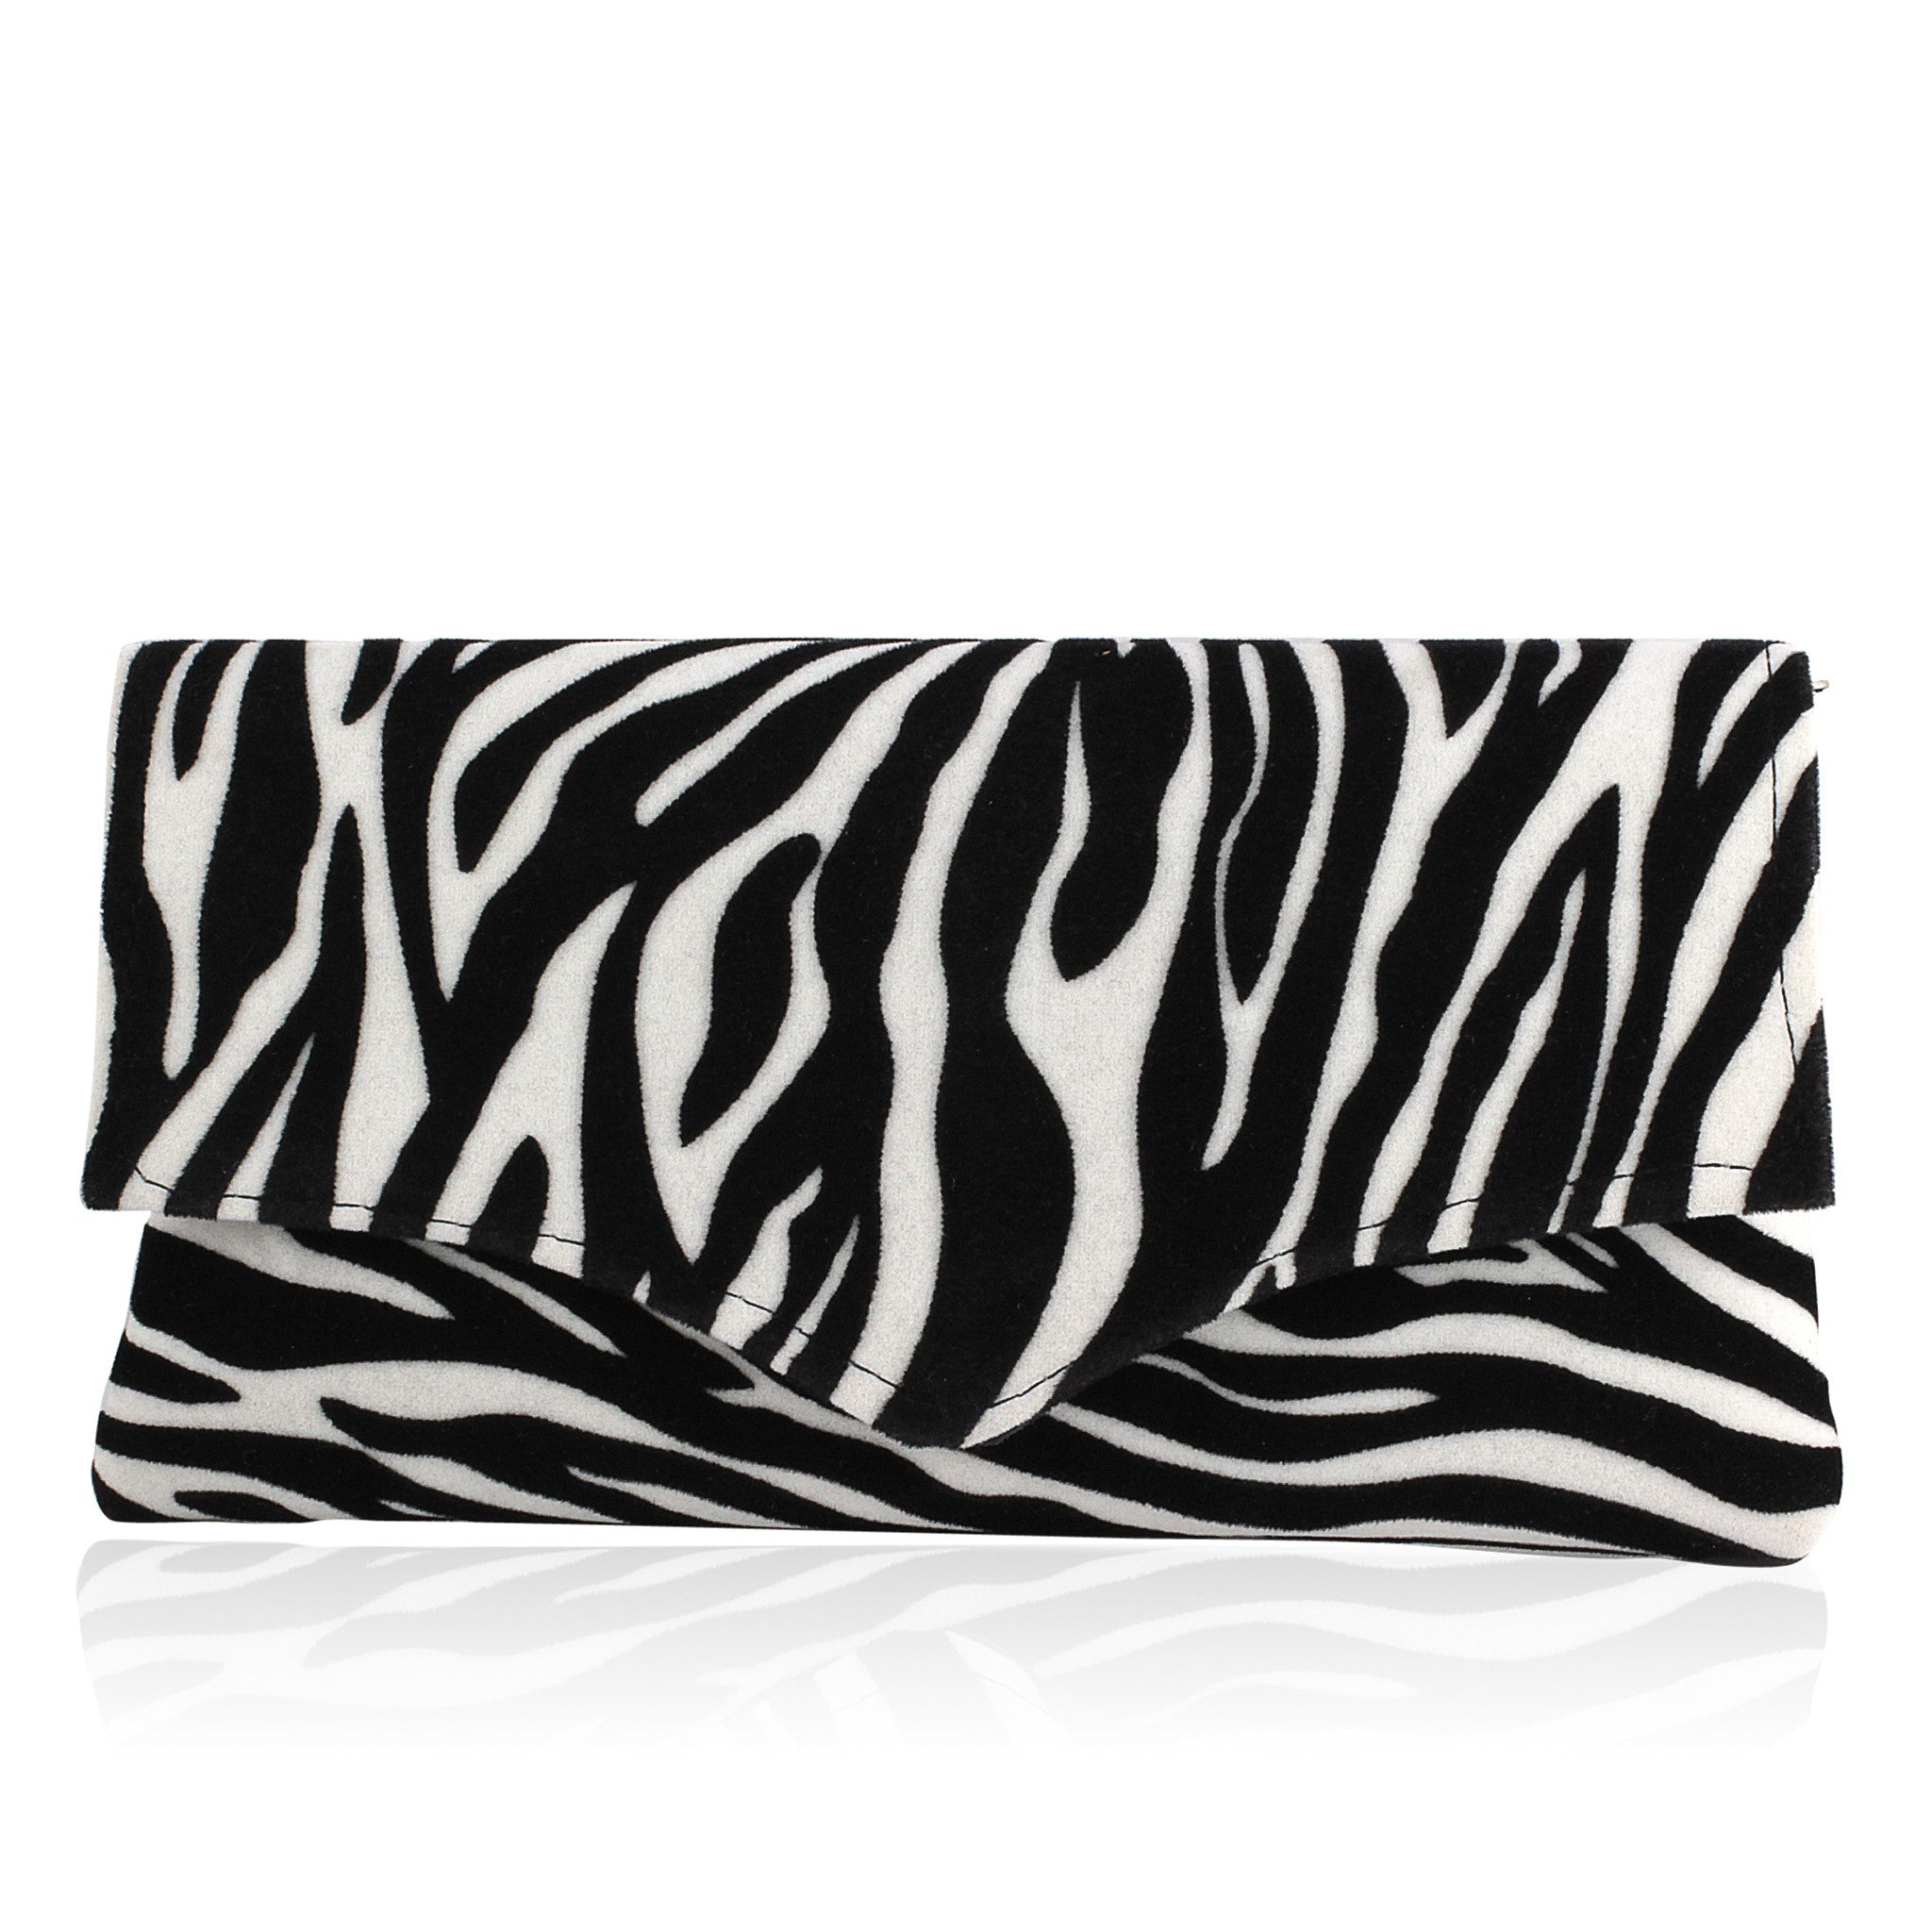 Kenyan Hand Made Zebra Envelope Clutch